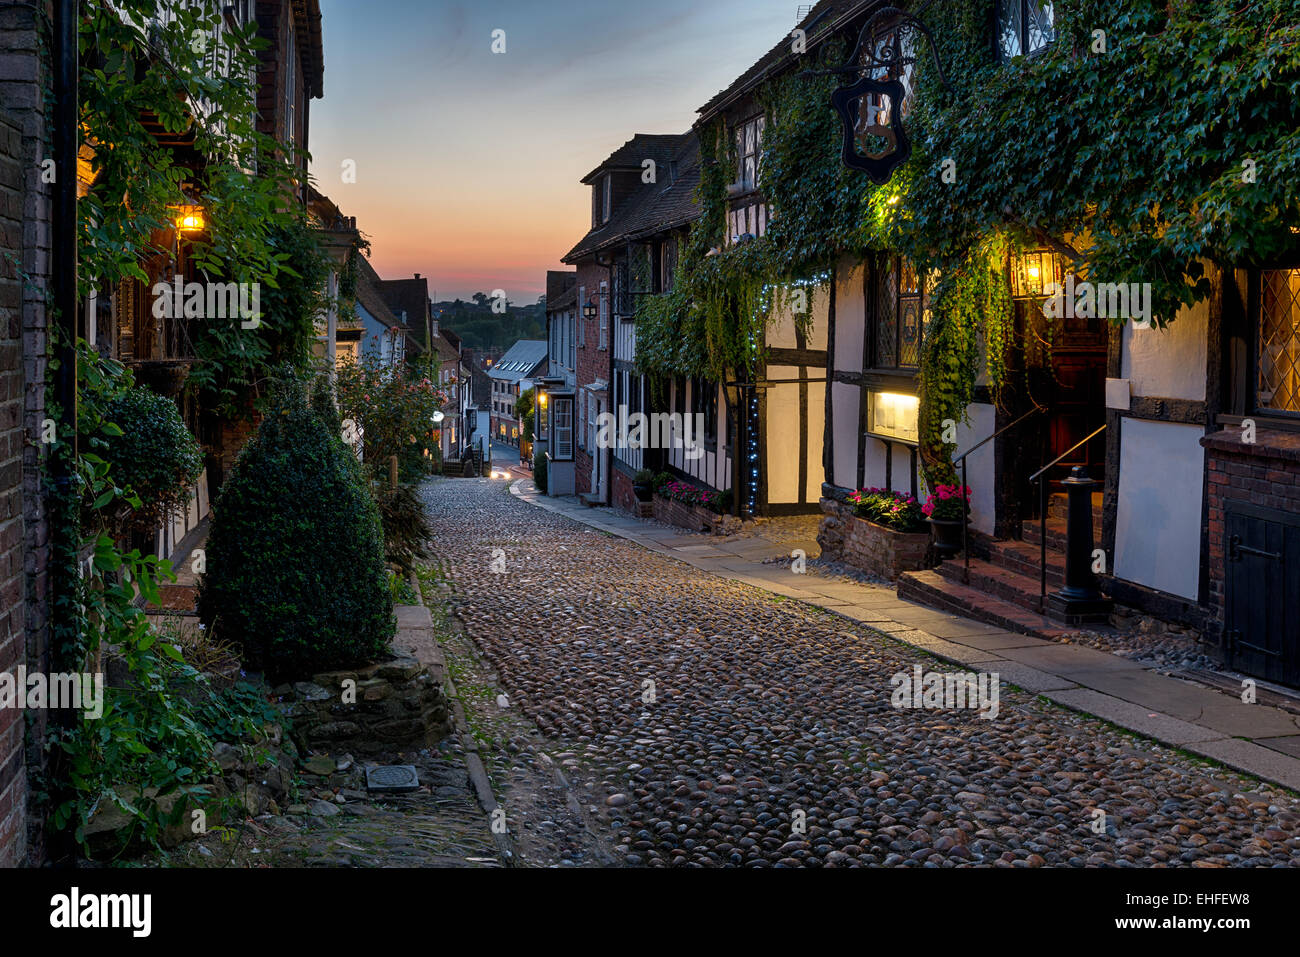 Nighttime on the cobbles at Mermaid Street in East Sussex - Stock Image